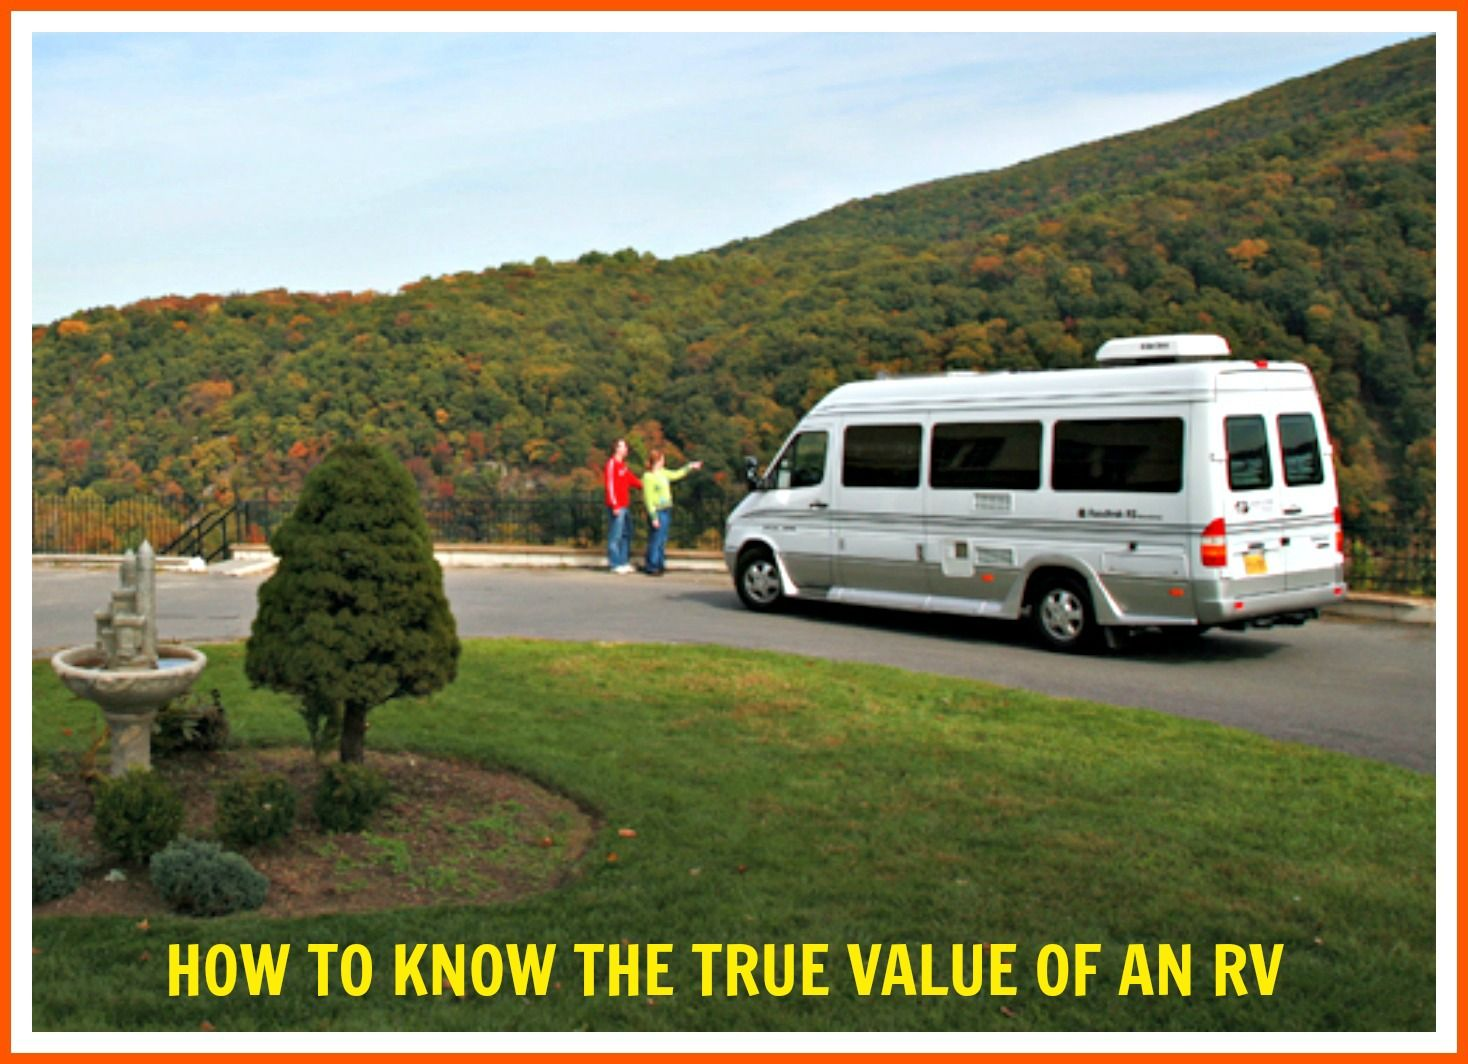 How To Know What An Rv Is Worth Beaches Near Me Spring Camping Camping In The Rain